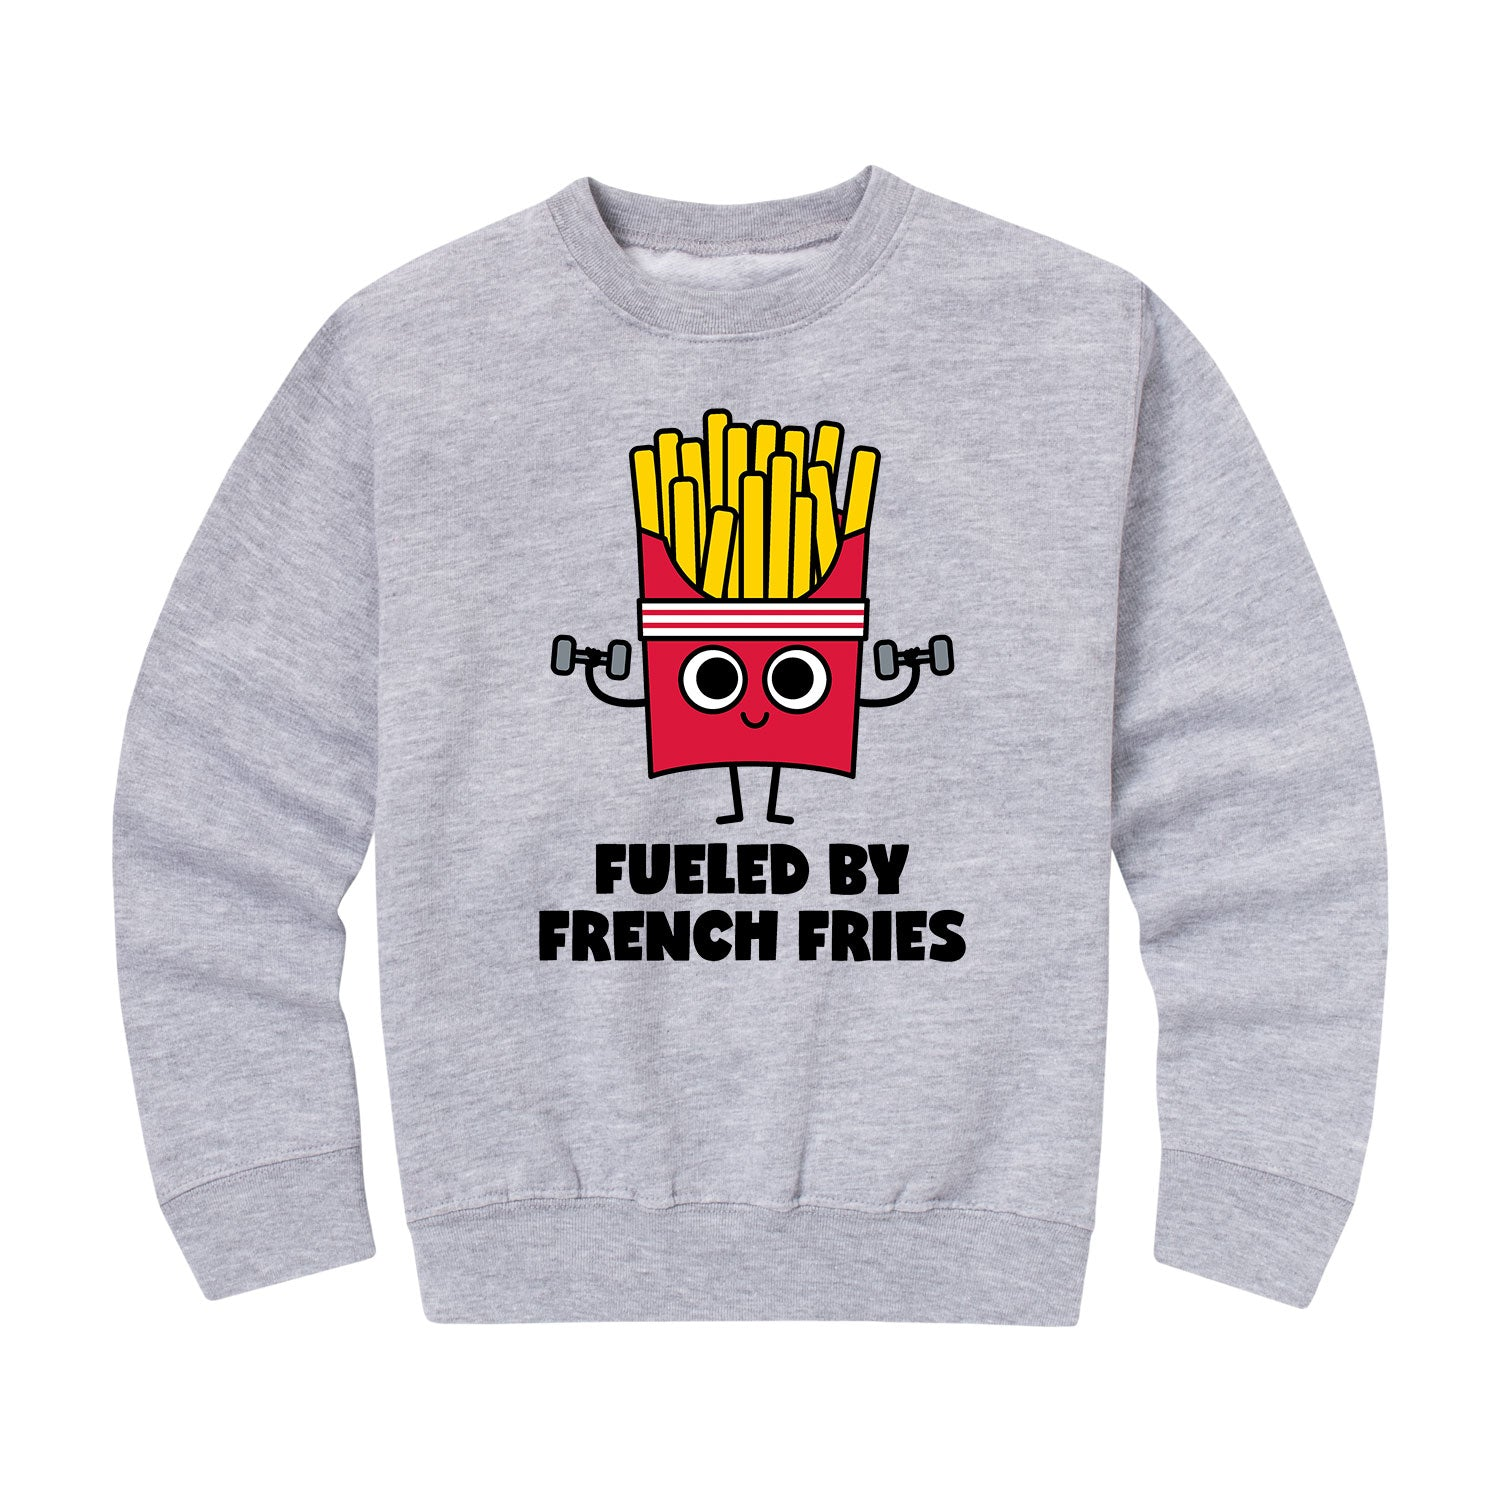 Fueled By French Fries - Youth & Toddler Crew Neck Fleece